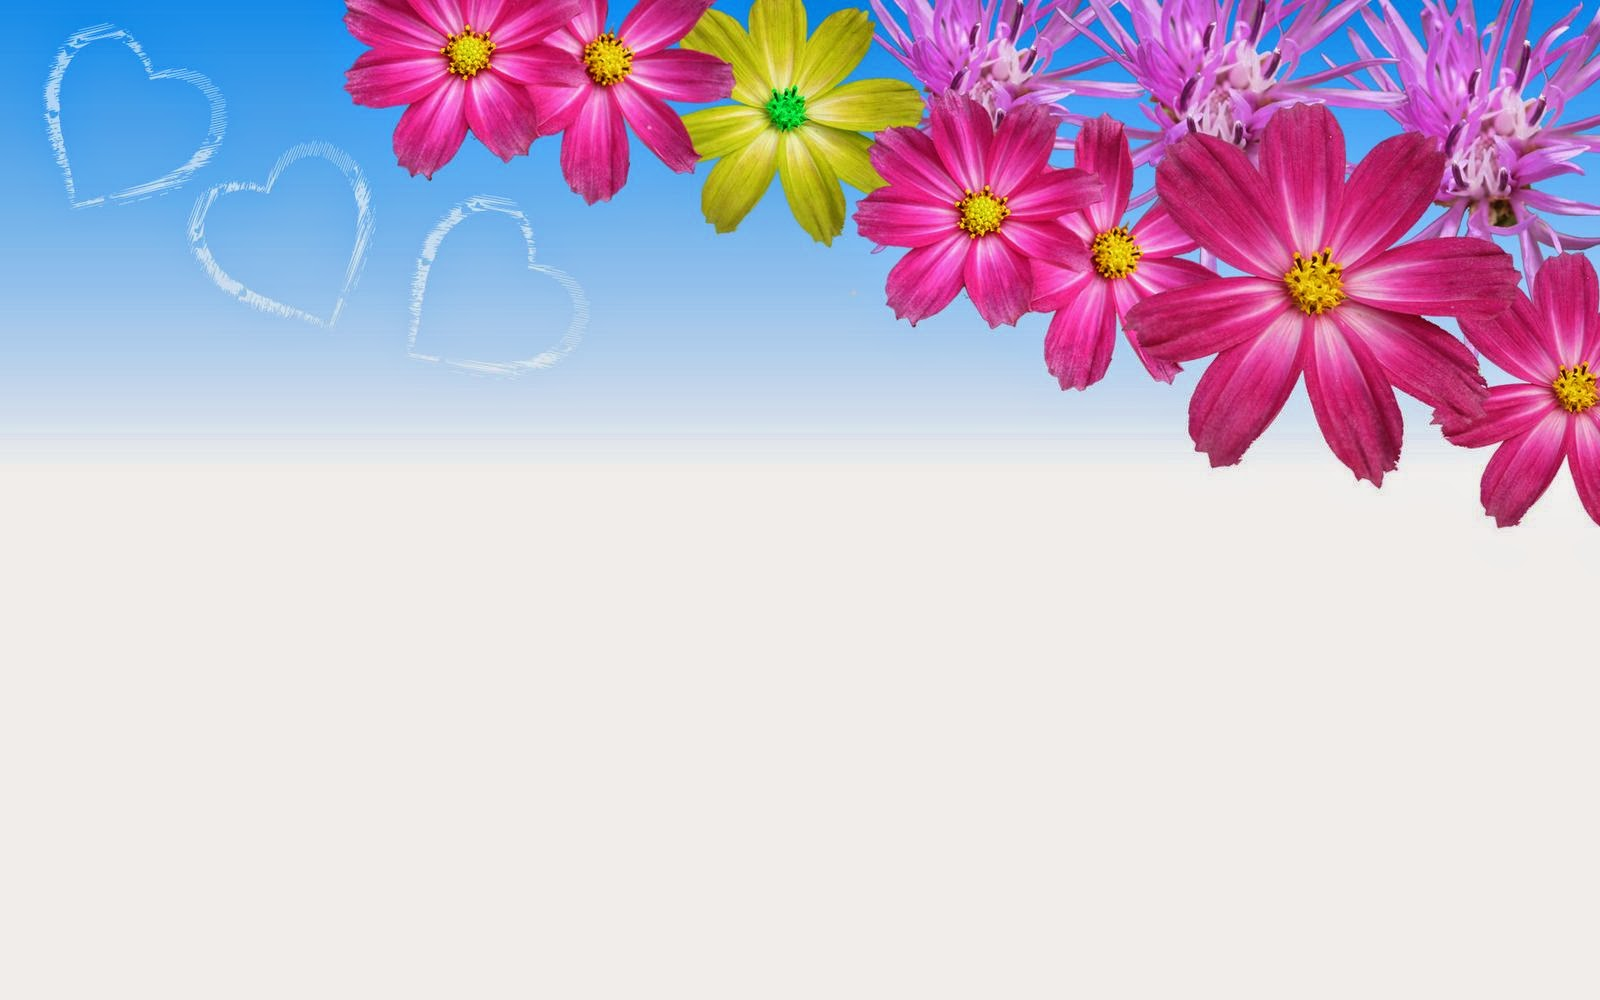 flower-power-wallpaper-aster-blue